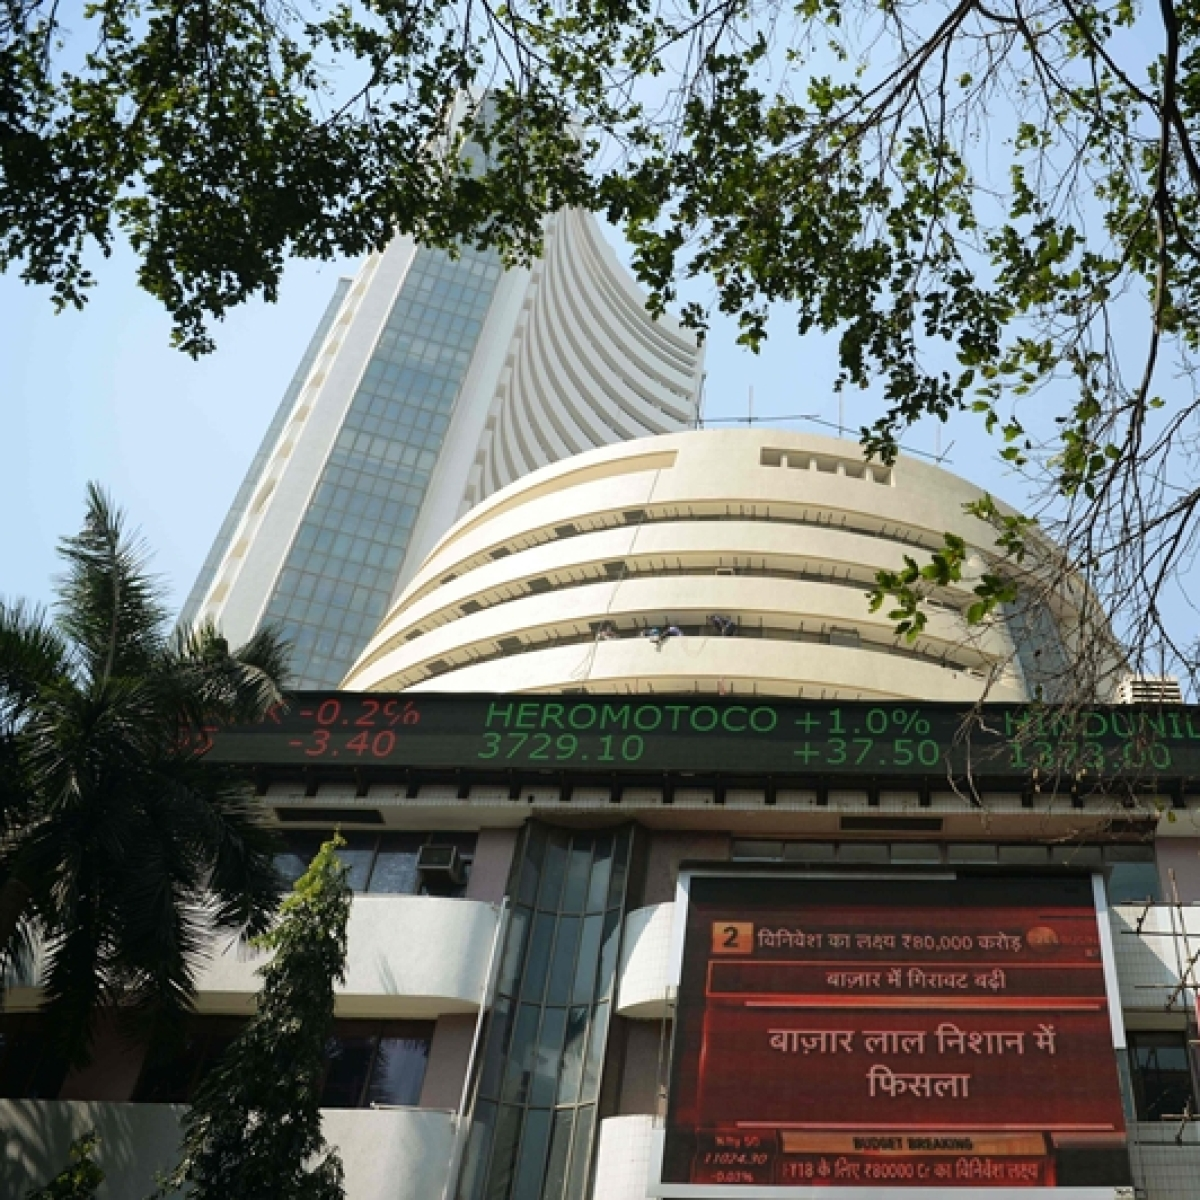 Sensex soars past 52,000; Nifty tops 15,300